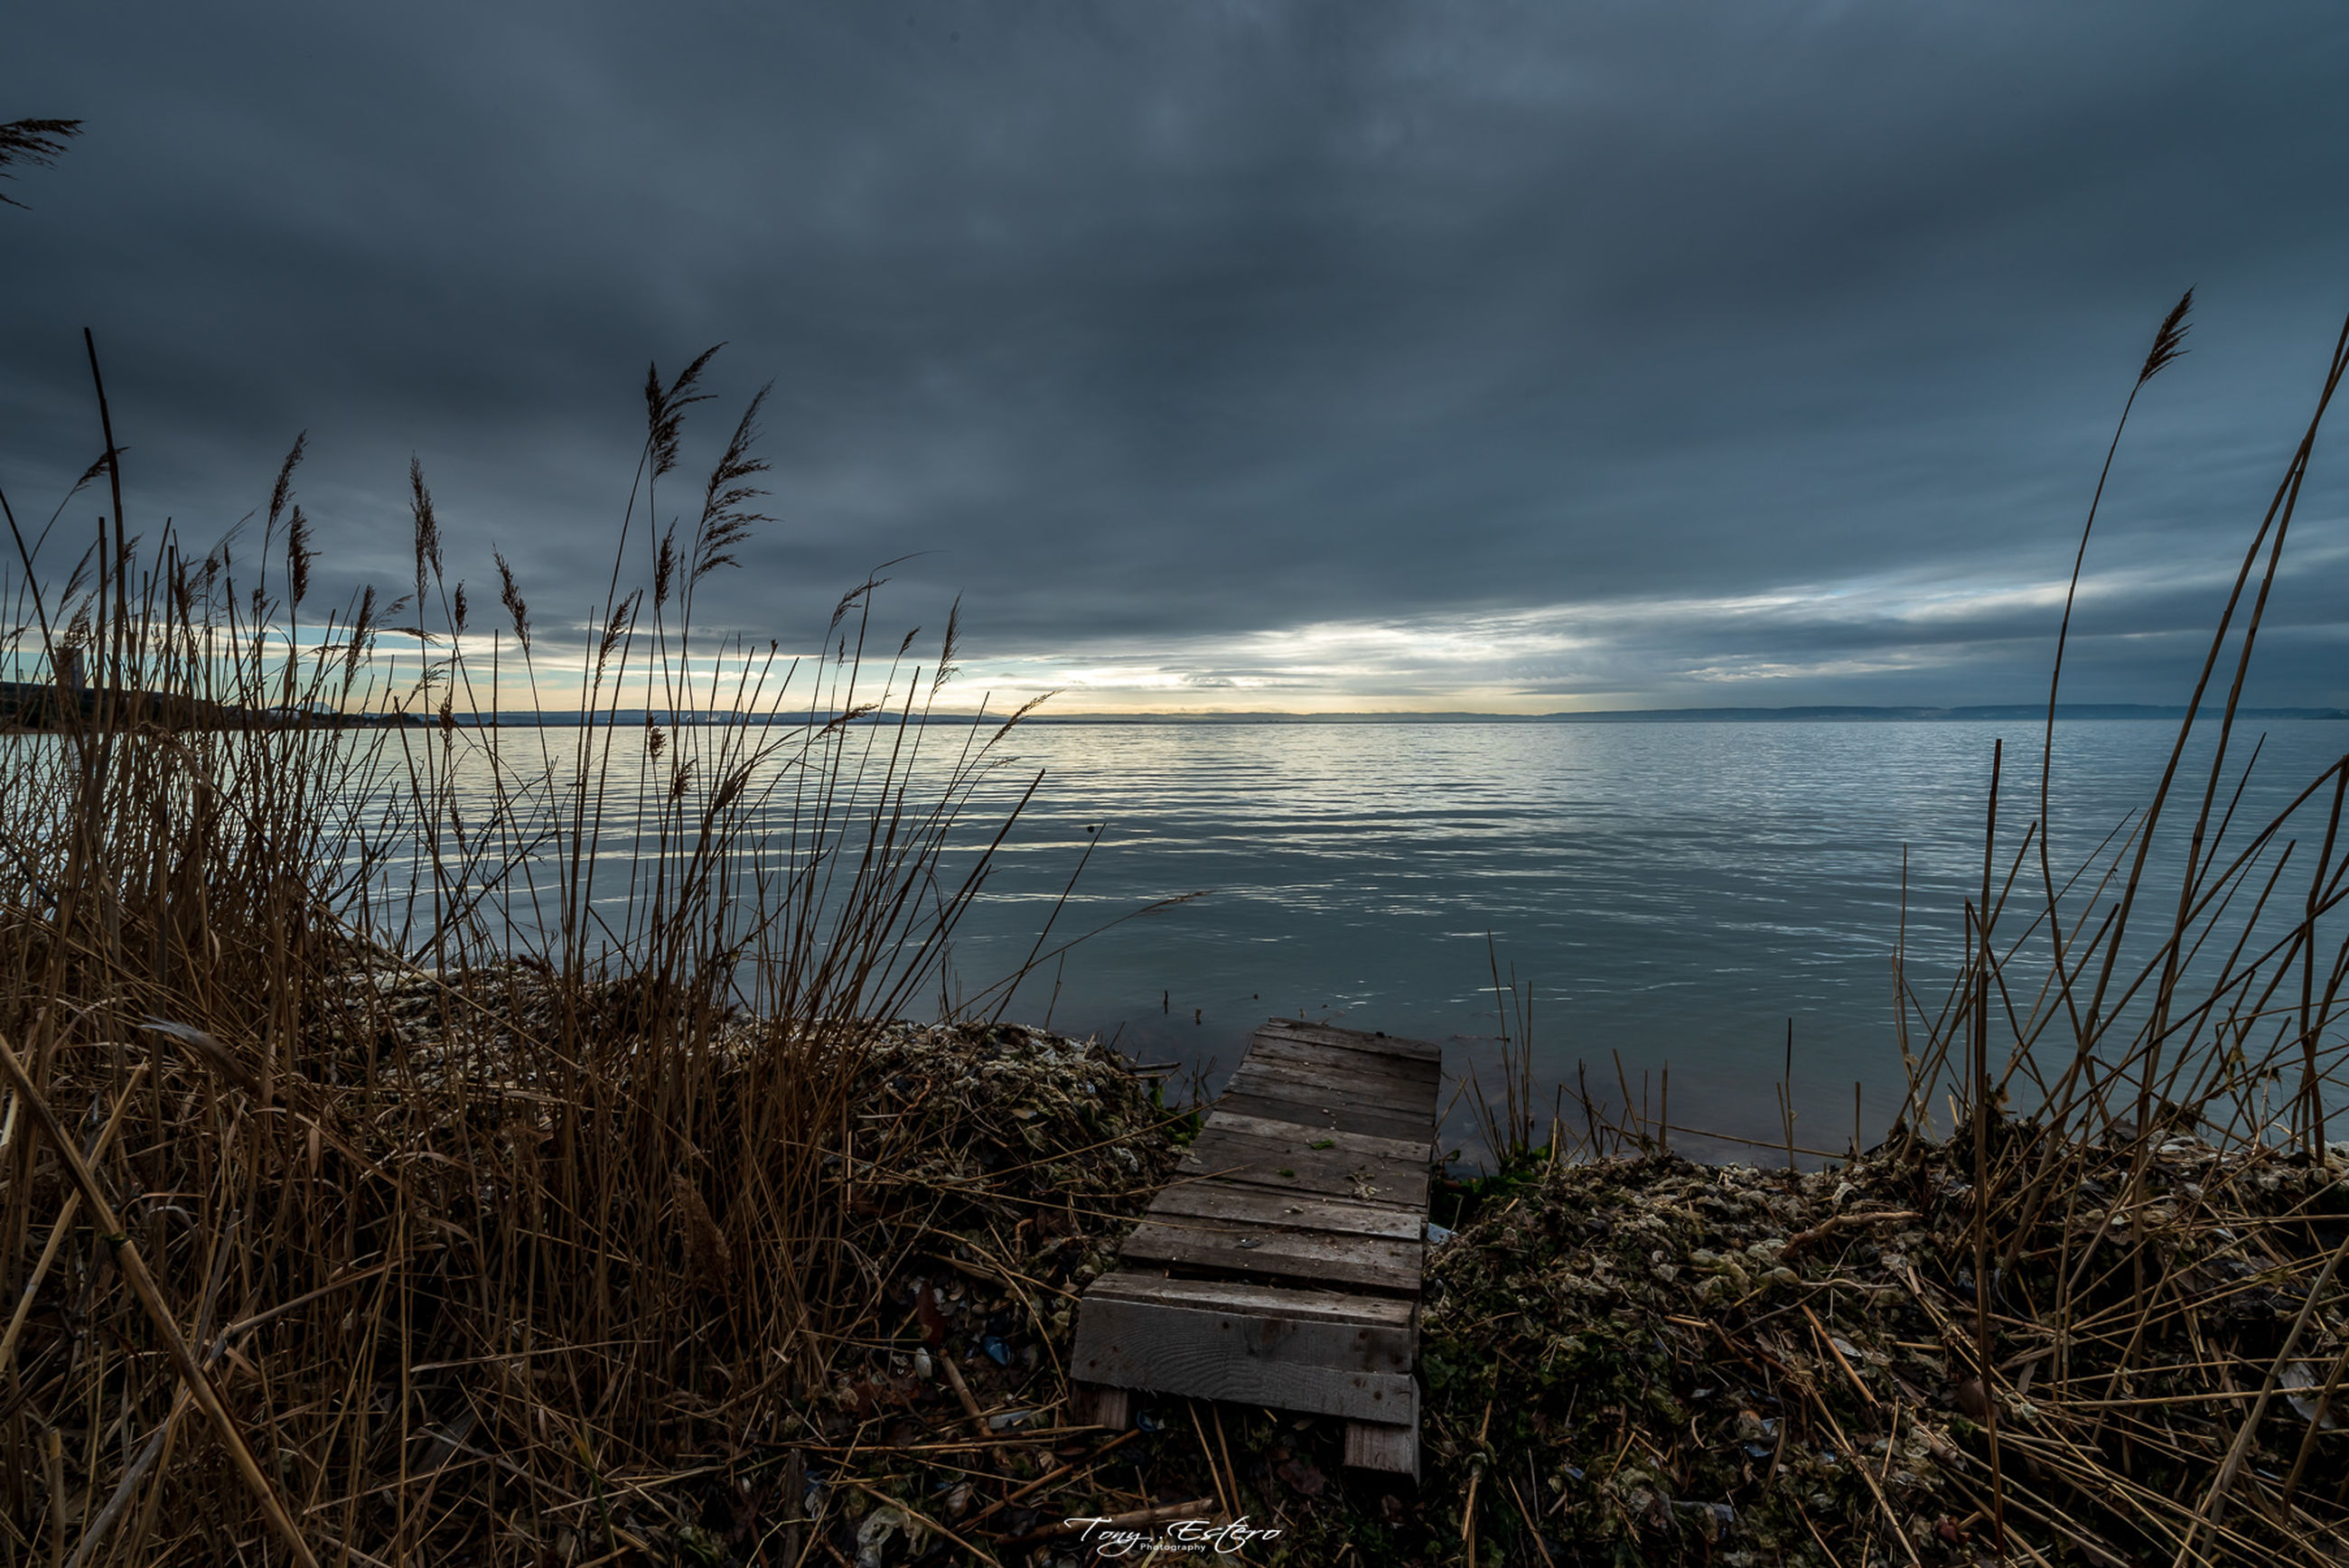 cloud - sky, sky, water, tranquility, beauty in nature, tranquil scene, plant, nature, scenics - nature, grass, sea, no people, land, beach, horizon, non-urban scene, growth, wood - material, horizon over water, outdoors, marram grass, timothy grass